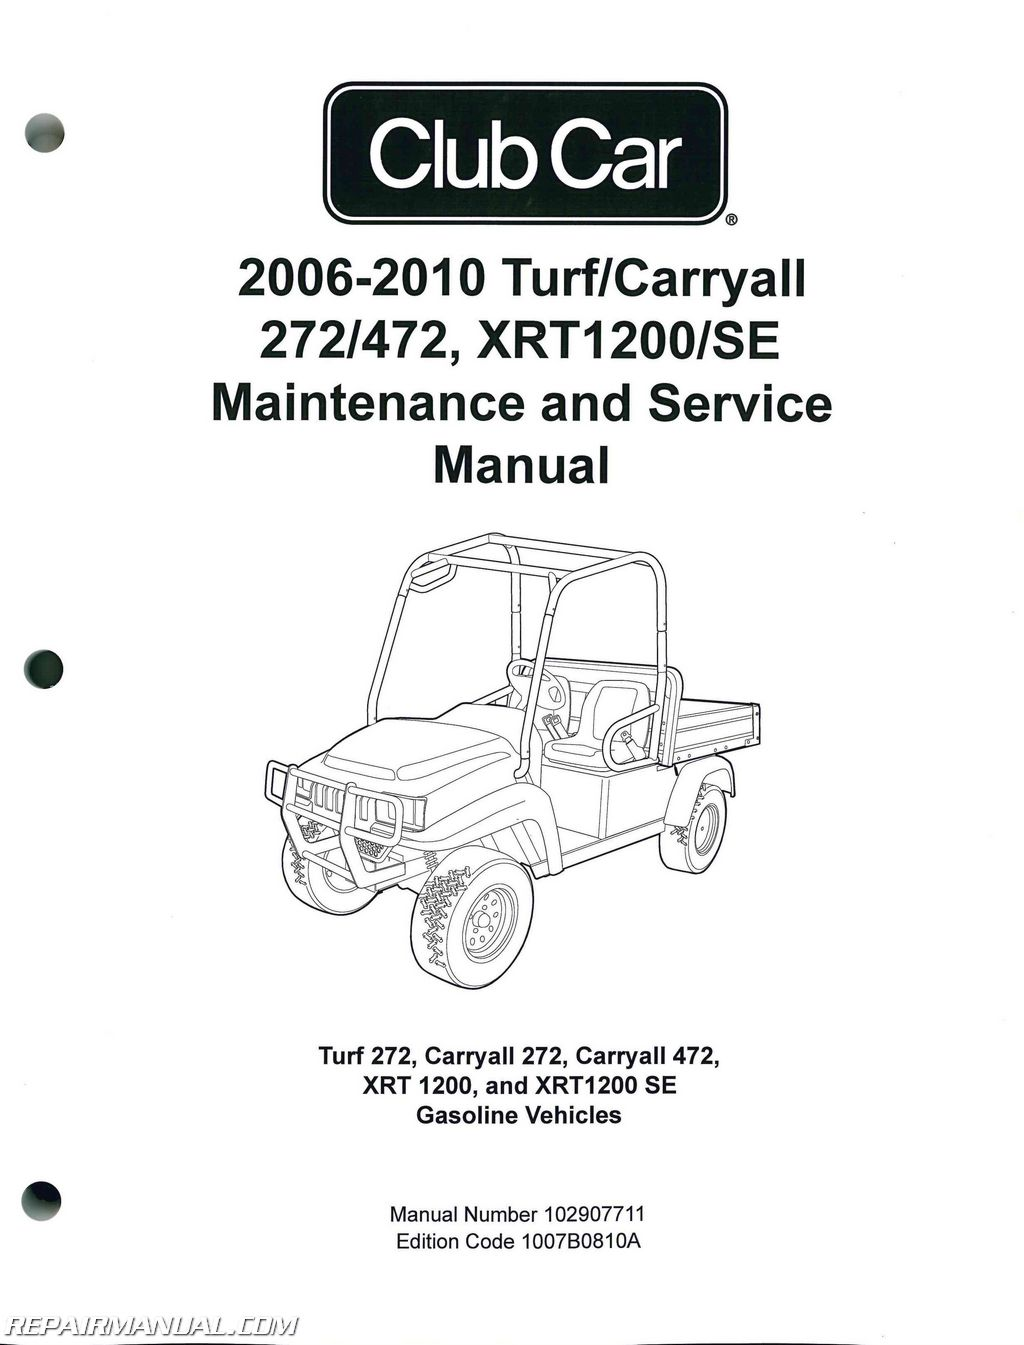 club car xrt wiring diagram club car xrt parts diagram